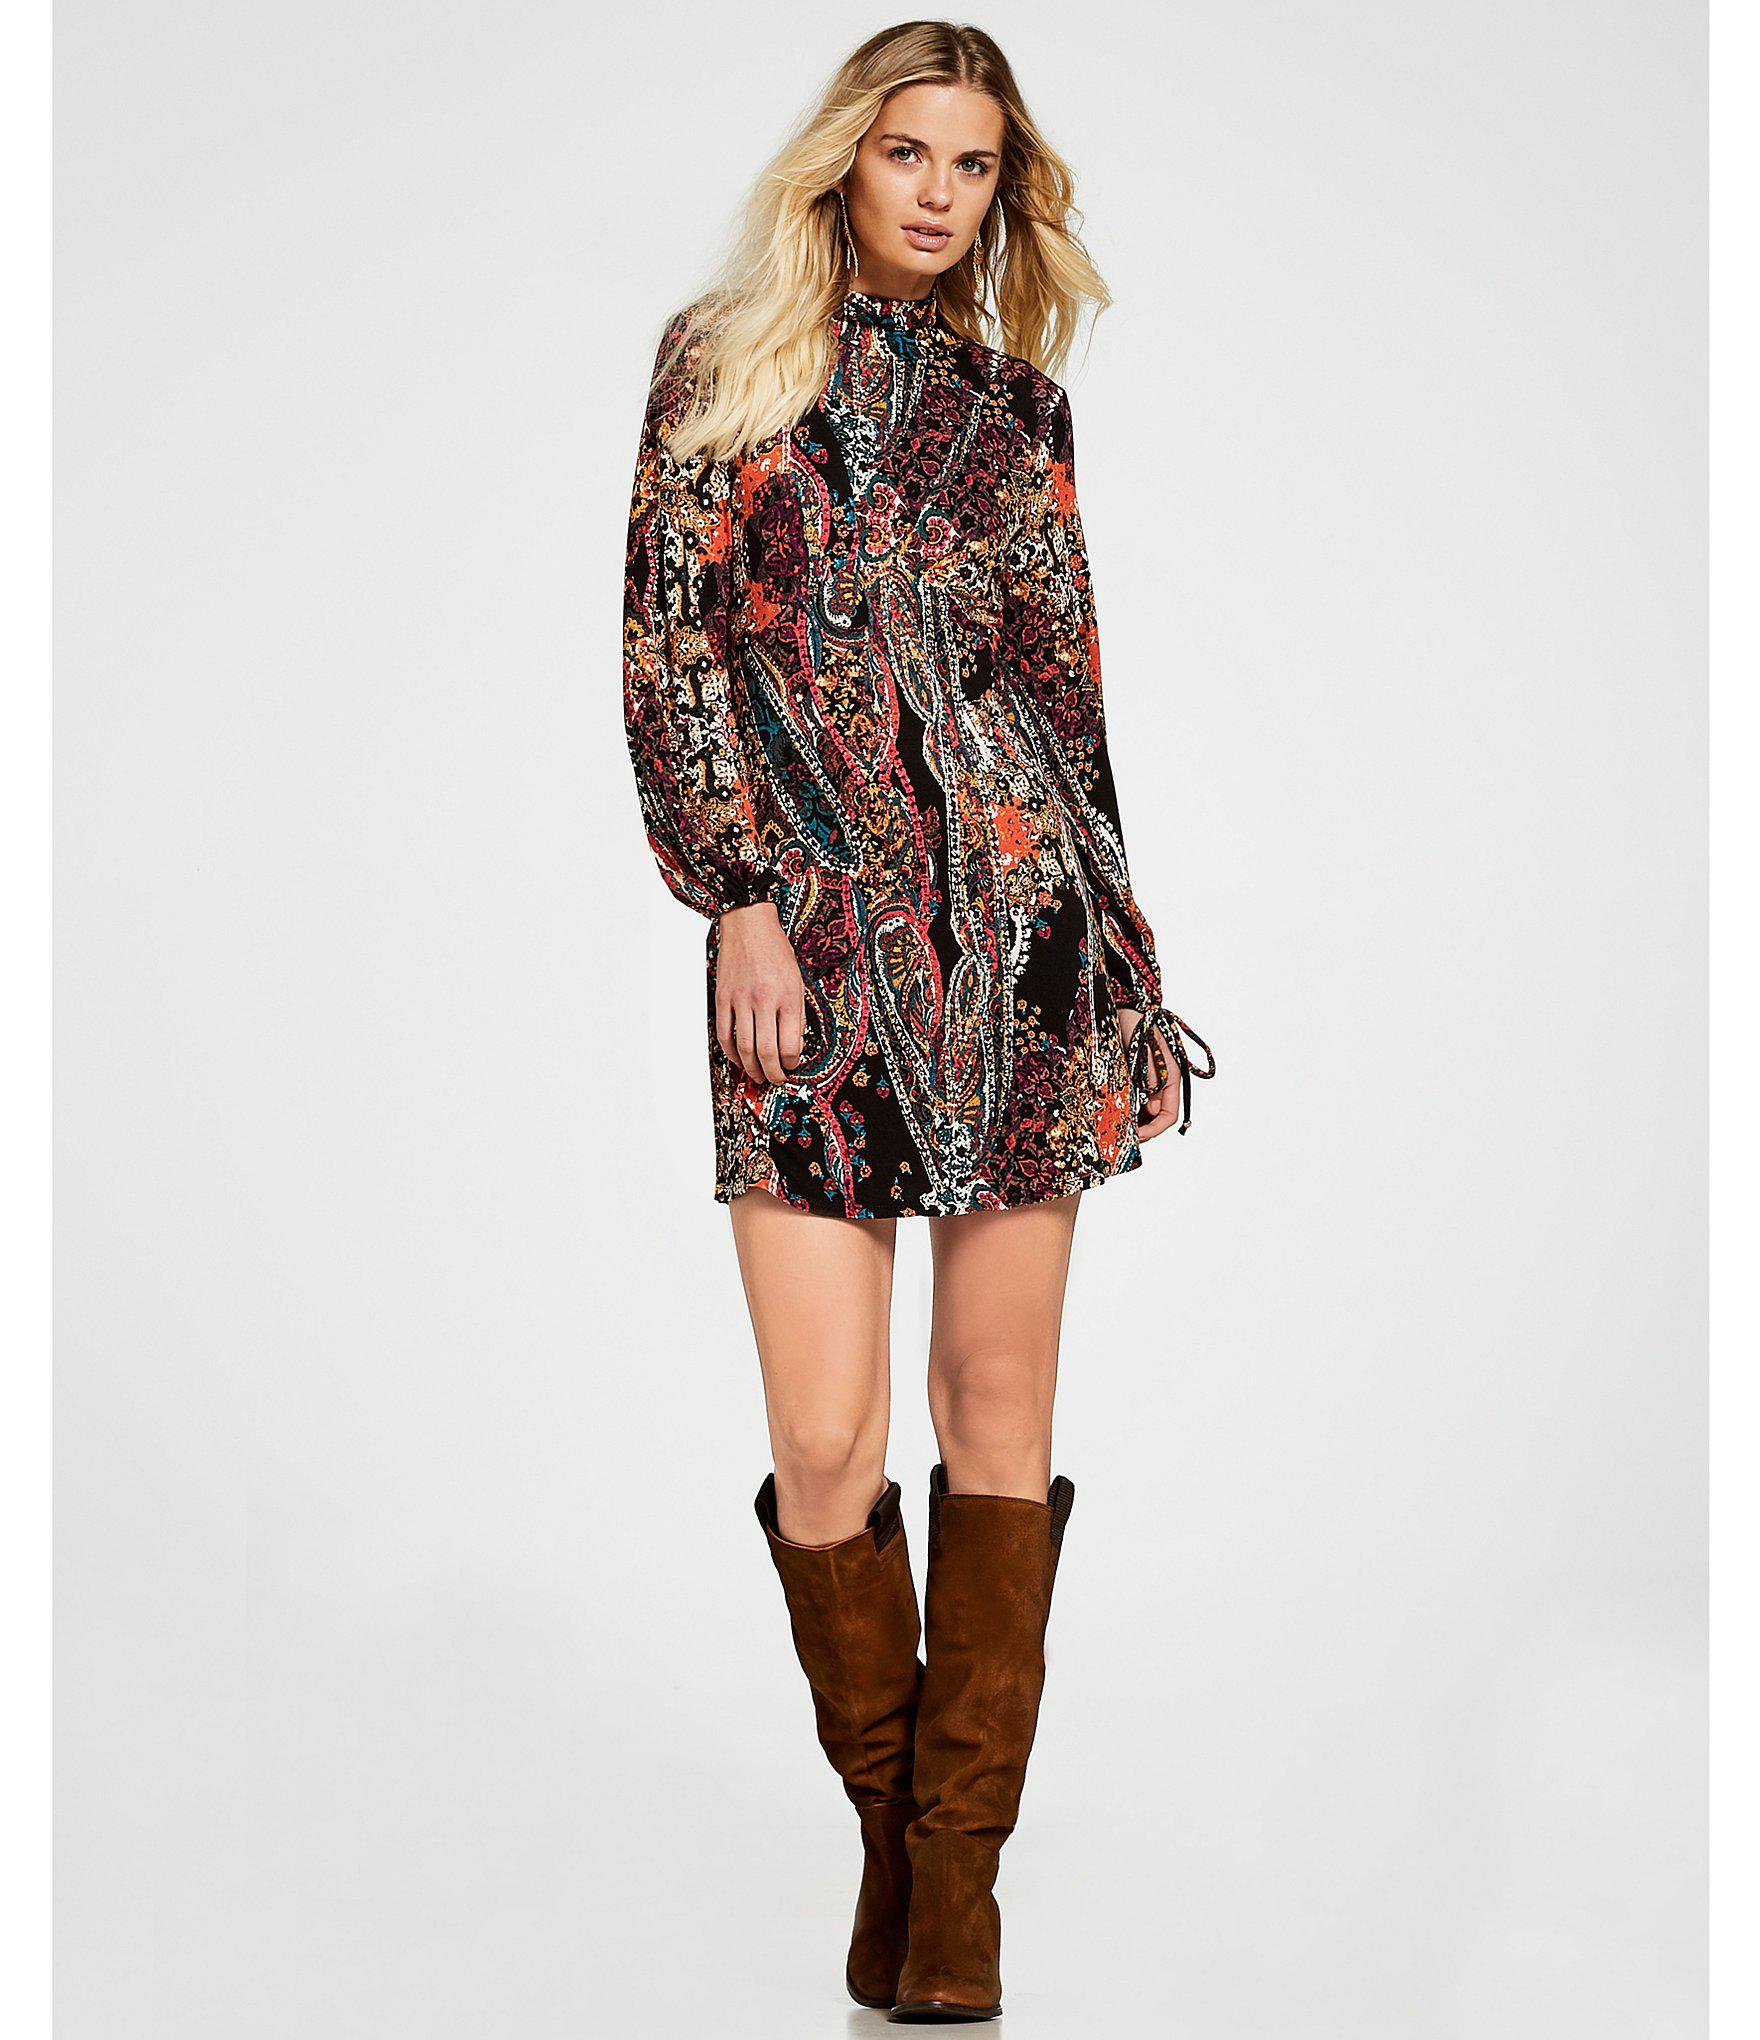 016425b56fe40 Free People All Dolled Up Mini Dress (red) Women's Dress in Black - Lyst